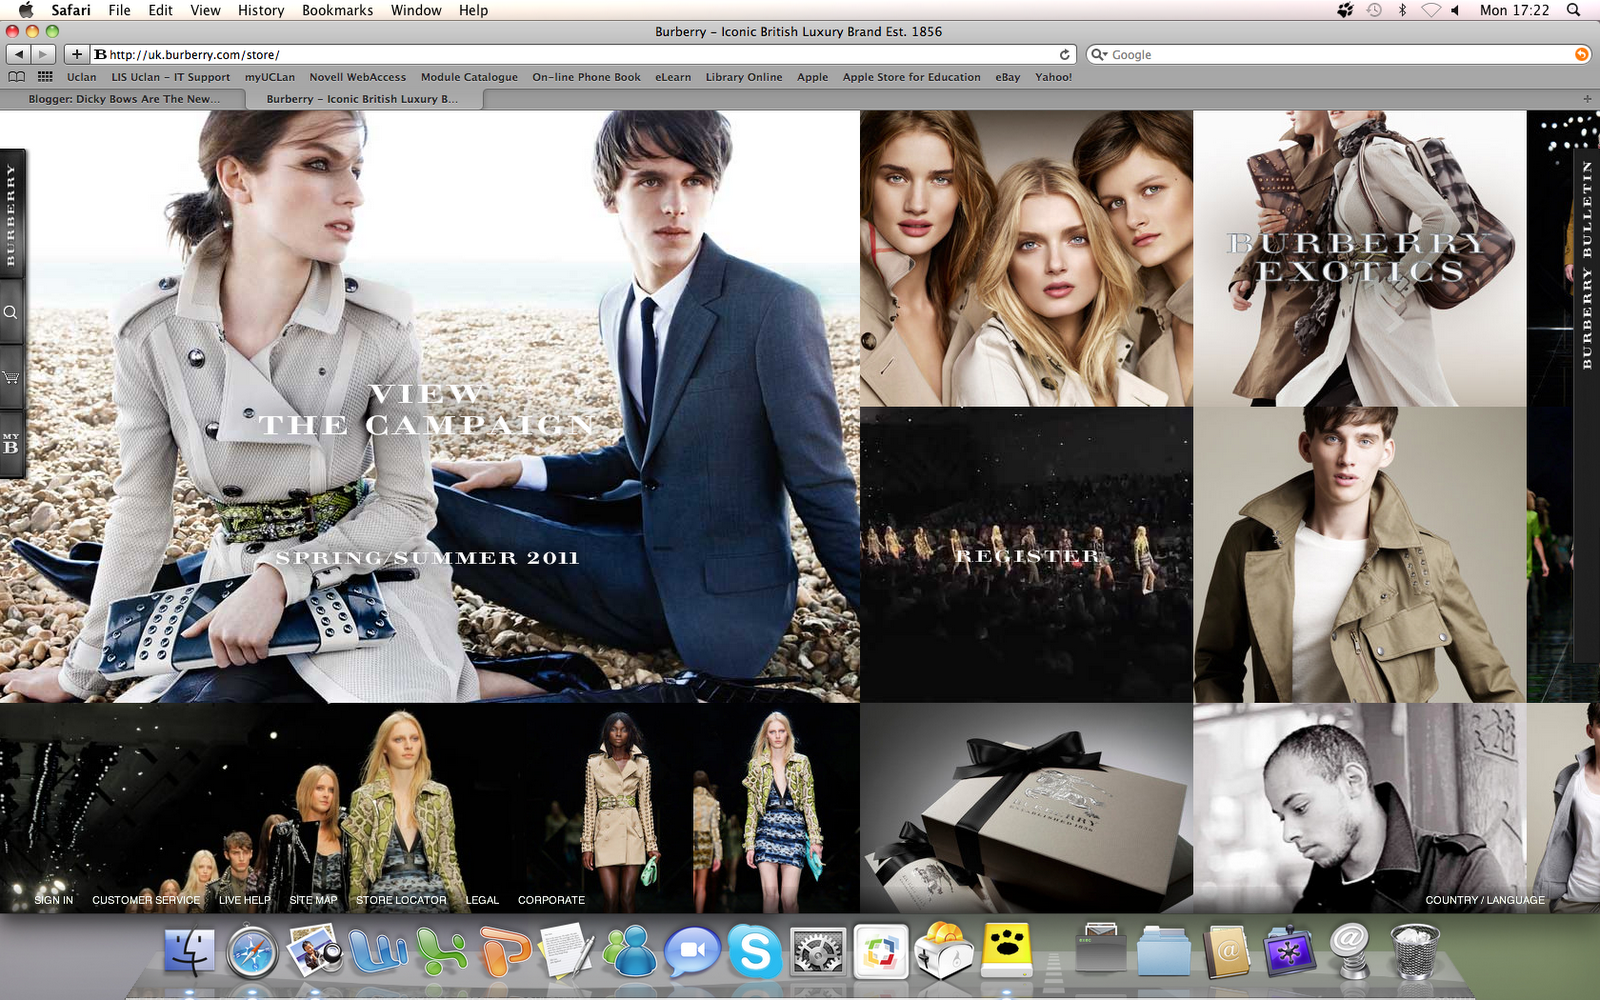 600174da400 The Burberry website is very modern and gives an overall insight to the  brand- The website is highly advanced and takes you back to the beginning  of the ...